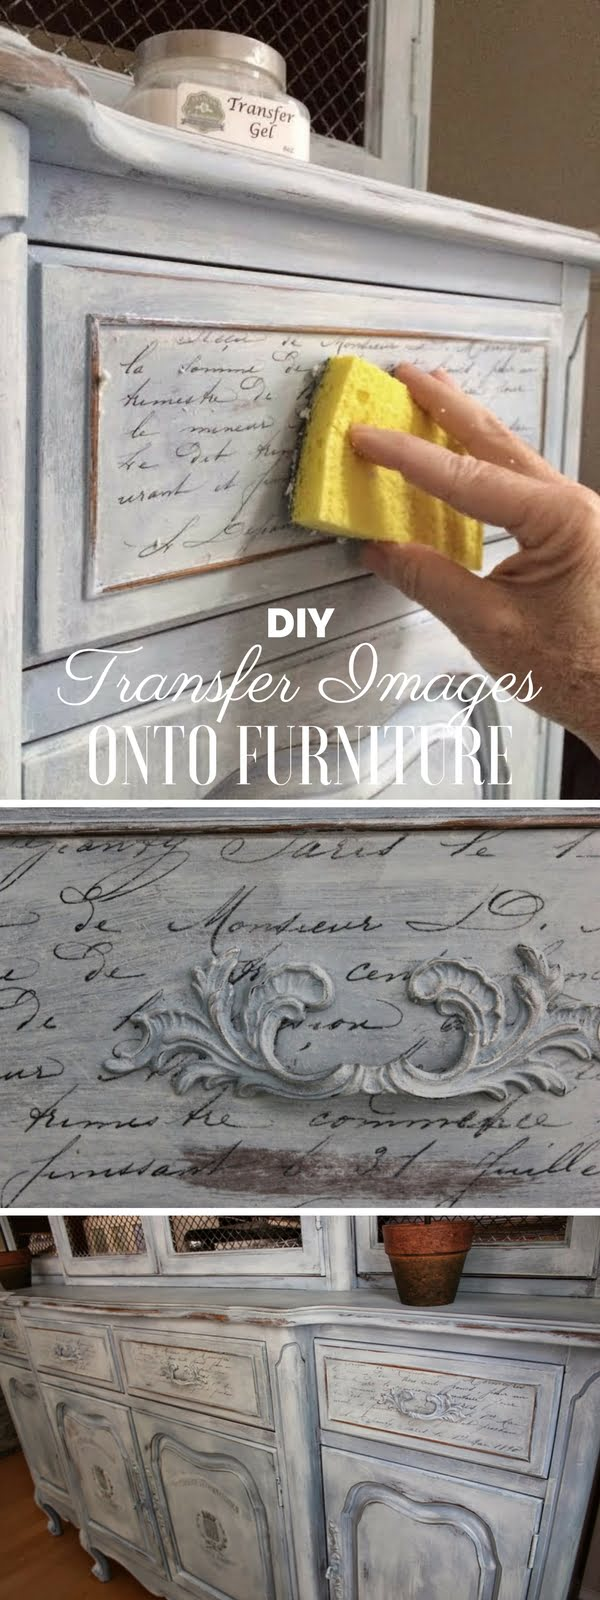 Check out the tutorial: #DIY Transfer Images onto Furniture